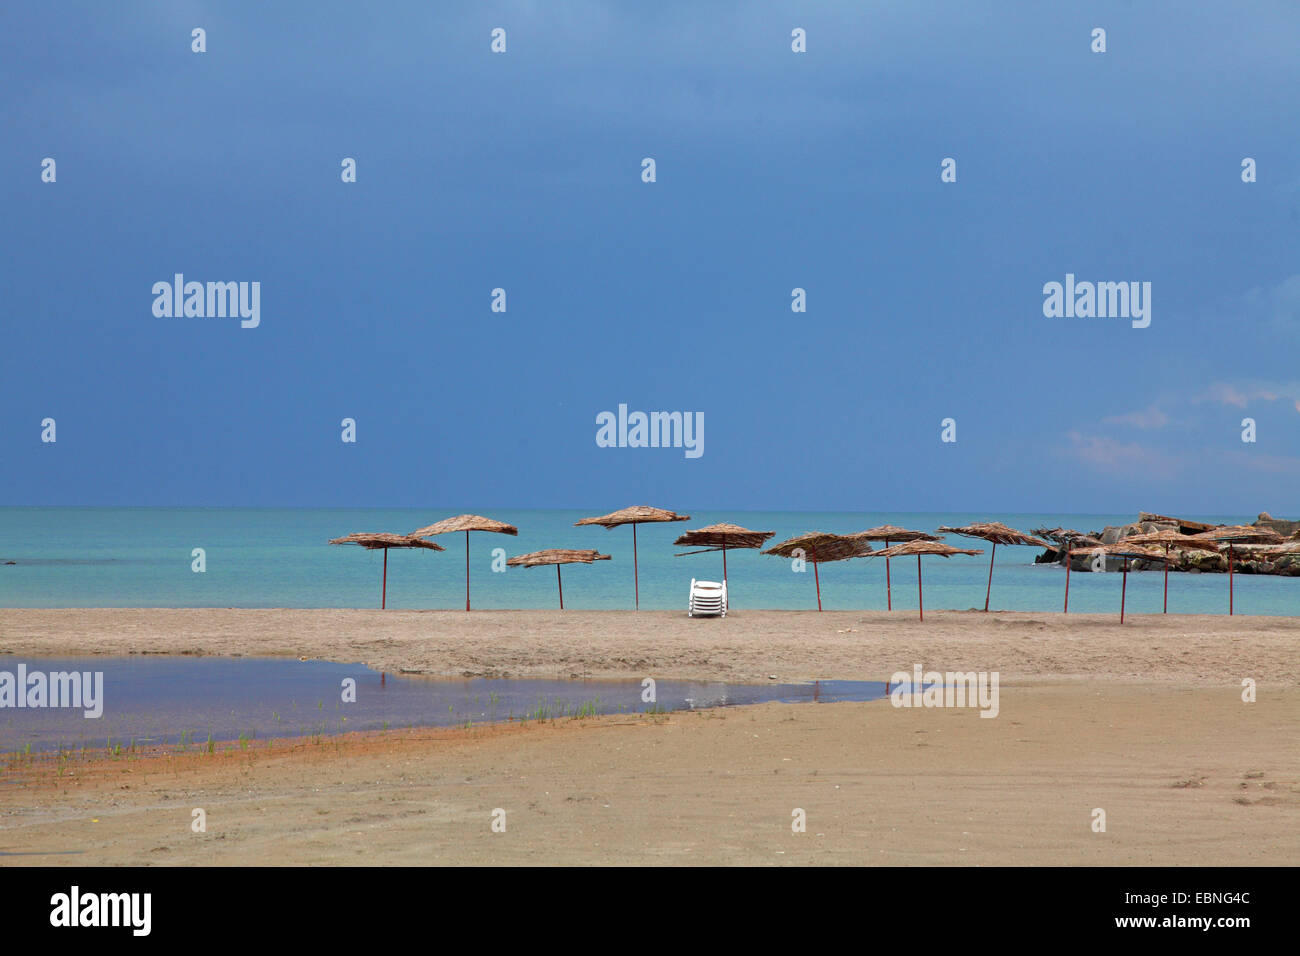 unpopulated beach with sunshades in Bolata bay at approaching rain, Bulgaria, Kaliakra - Stock Image